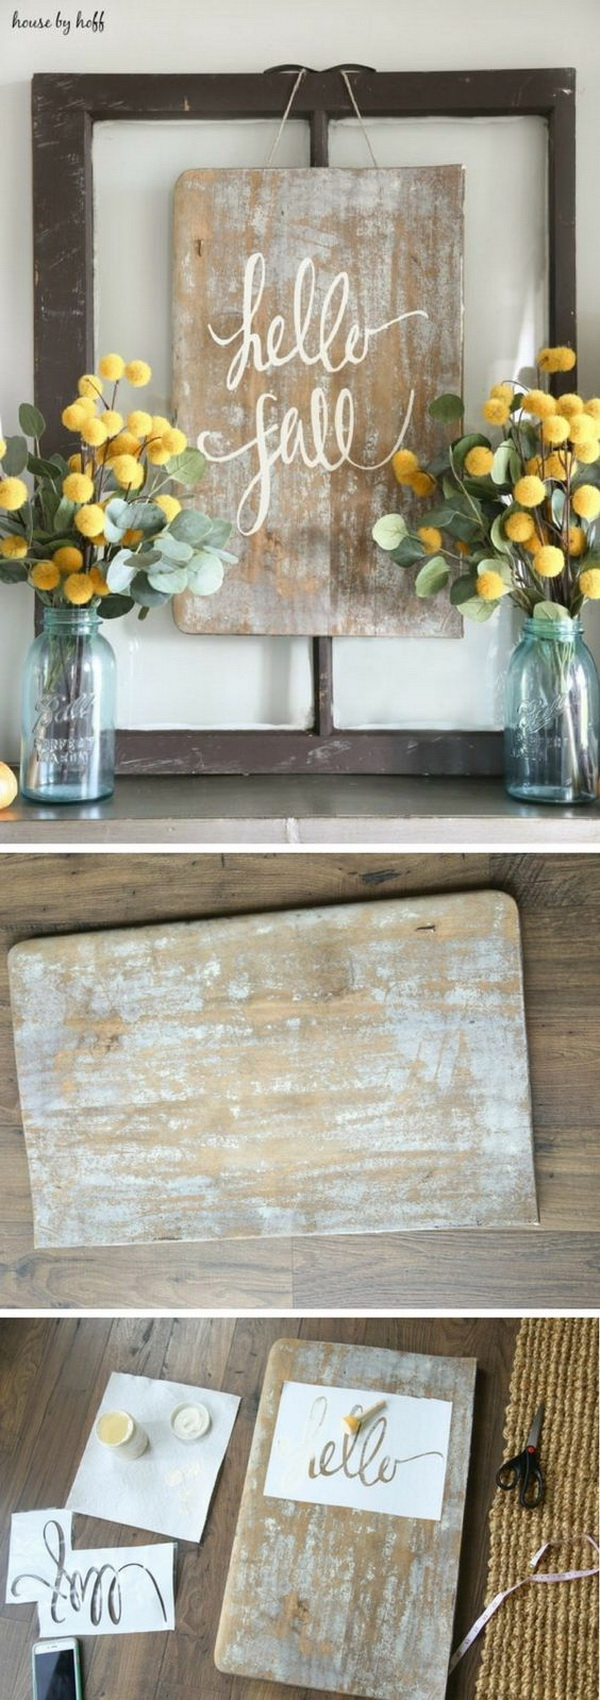 DIY Rustic Sign For Fall. Create your own rustic decor for the fall season with this easy project! Place it on your fireplace, front steps or countertop for the perfect welcoming sign for fall!